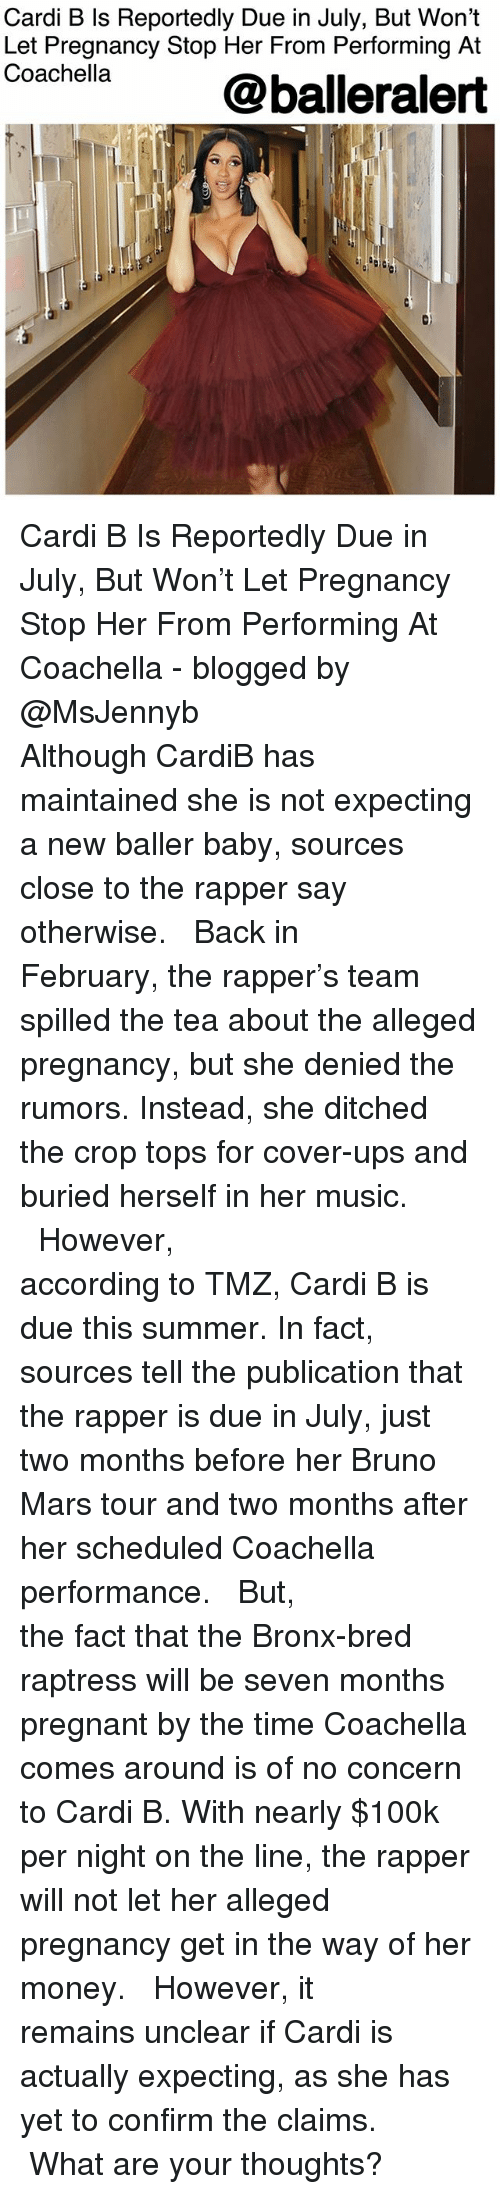 Ditched: Cardi B Is Reportedly Due in July, But Won't  Let Pregnancy Stop Her From Performing At  Coachella  @balleralert  0) Cardi B Is Reportedly Due in July, But Won't Let Pregnancy Stop Her From Performing At Coachella - blogged by @MsJennyb ⠀⠀⠀⠀⠀⠀⠀⠀⠀ ⠀⠀⠀⠀⠀⠀⠀⠀⠀ Although CardiB has maintained she is not expecting a new baller baby, sources close to the rapper say otherwise. ⠀⠀⠀⠀⠀⠀⠀⠀⠀ ⠀⠀⠀⠀⠀⠀⠀⠀⠀ Back in February, the rapper's team spilled the tea about the alleged pregnancy, but she denied the rumors. Instead, she ditched the crop tops for cover-ups and buried herself in her music. ⠀⠀⠀⠀⠀⠀⠀⠀⠀ ⠀⠀⠀⠀⠀⠀⠀⠀⠀ However, according to TMZ, Cardi B is due this summer. In fact, sources tell the publication that the rapper is due in July, just two months before her Bruno Mars tour and two months after her scheduled Coachella performance. ⠀⠀⠀⠀⠀⠀⠀⠀⠀ ⠀⠀⠀⠀⠀⠀⠀⠀⠀ But, the fact that the Bronx-bred raptress will be seven months pregnant by the time Coachella comes around is of no concern to Cardi B. With nearly $100k per night on the line, the rapper will not let her alleged pregnancy get in the way of her money. ⠀⠀⠀⠀⠀⠀⠀⠀⠀ ⠀⠀⠀⠀⠀⠀⠀⠀⠀ However, it remains unclear if Cardi is actually expecting, as she has yet to confirm the claims. ⠀⠀⠀⠀⠀⠀⠀⠀⠀ ⠀⠀⠀⠀⠀⠀⠀⠀⠀ What are your thoughts?